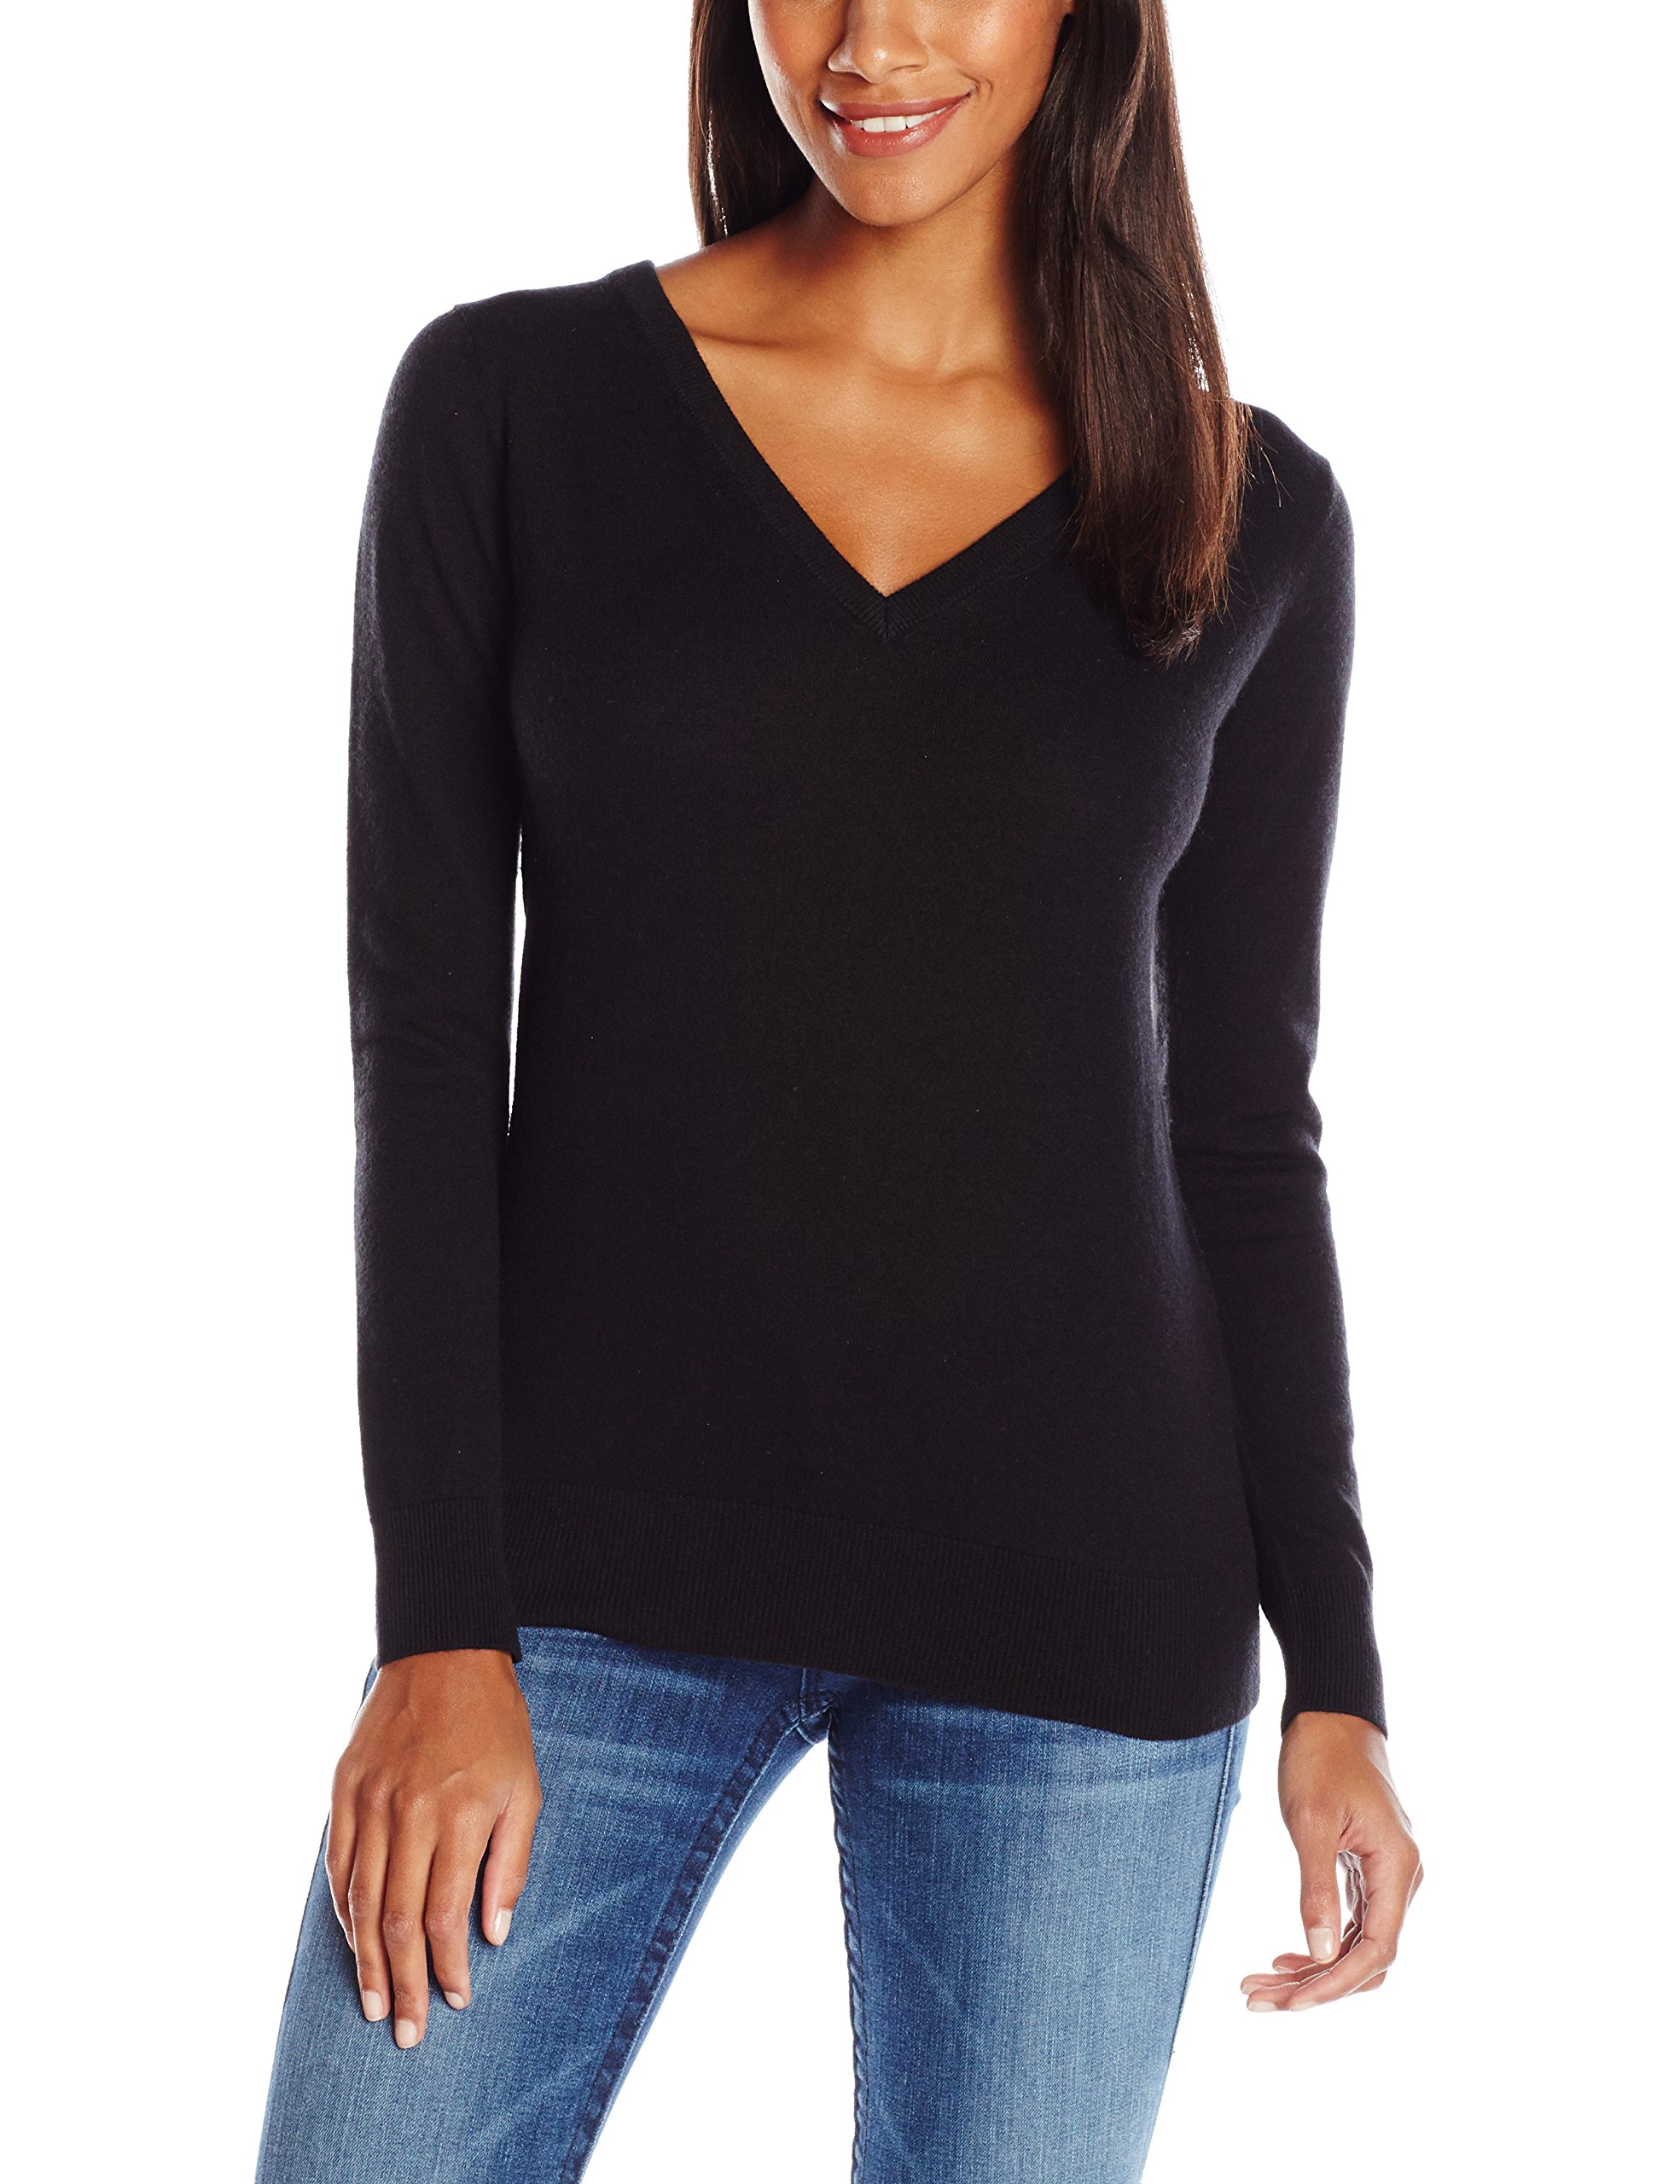 Minnie Rose Women's New and Now Cashmere Super Fine Back Front V-Neck Cowl, Black, Medium by Minnie Rose (Image #2)